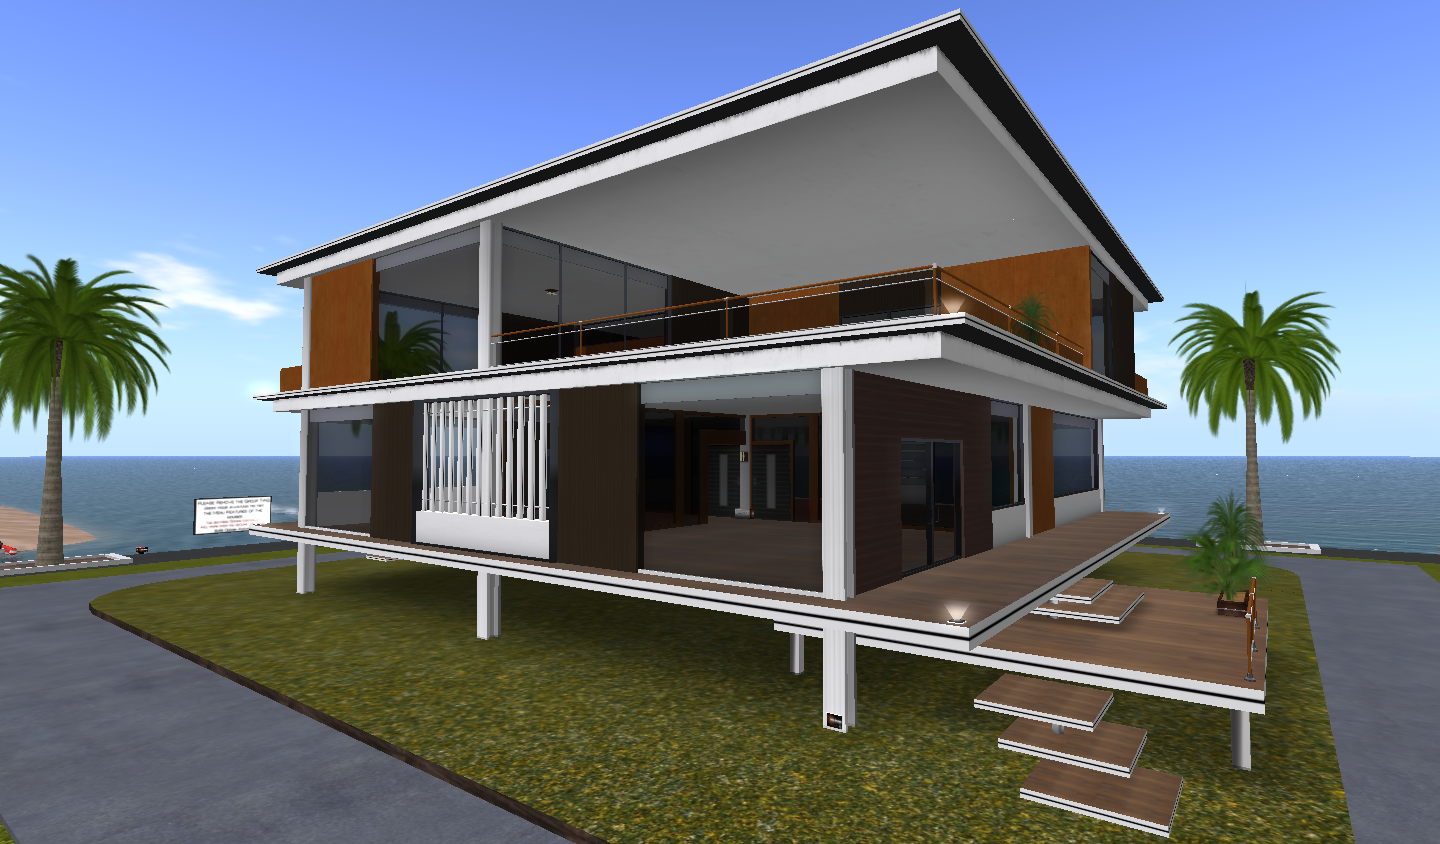 Expol villa modern architectural design bobz design for Architecture and design